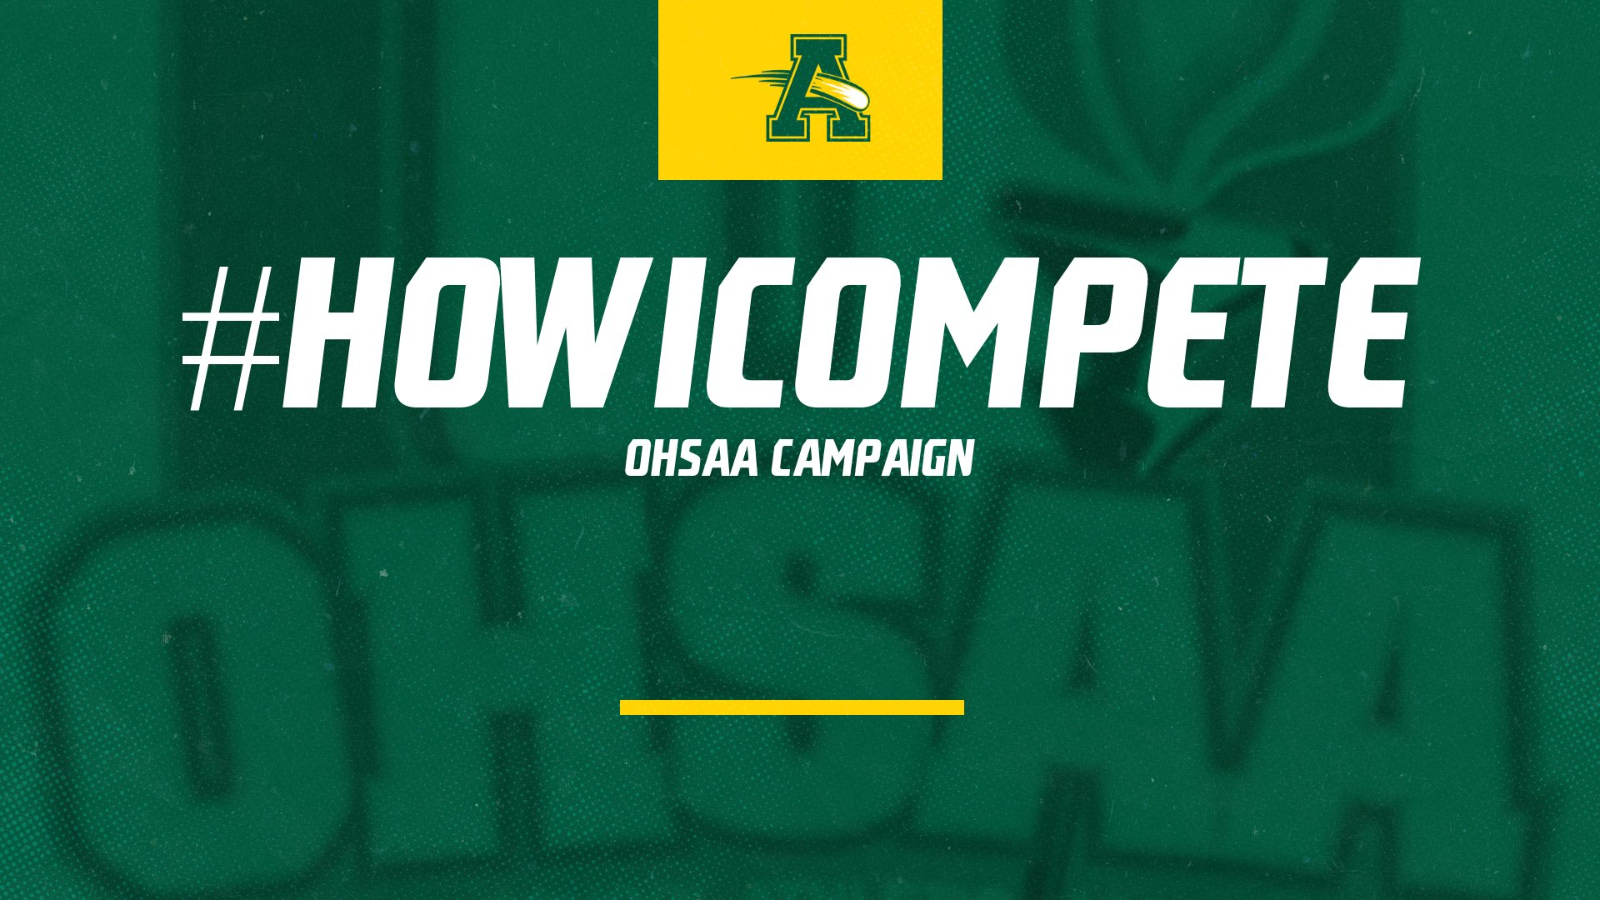 #howicompete Campaign Launched by @OHSAASports